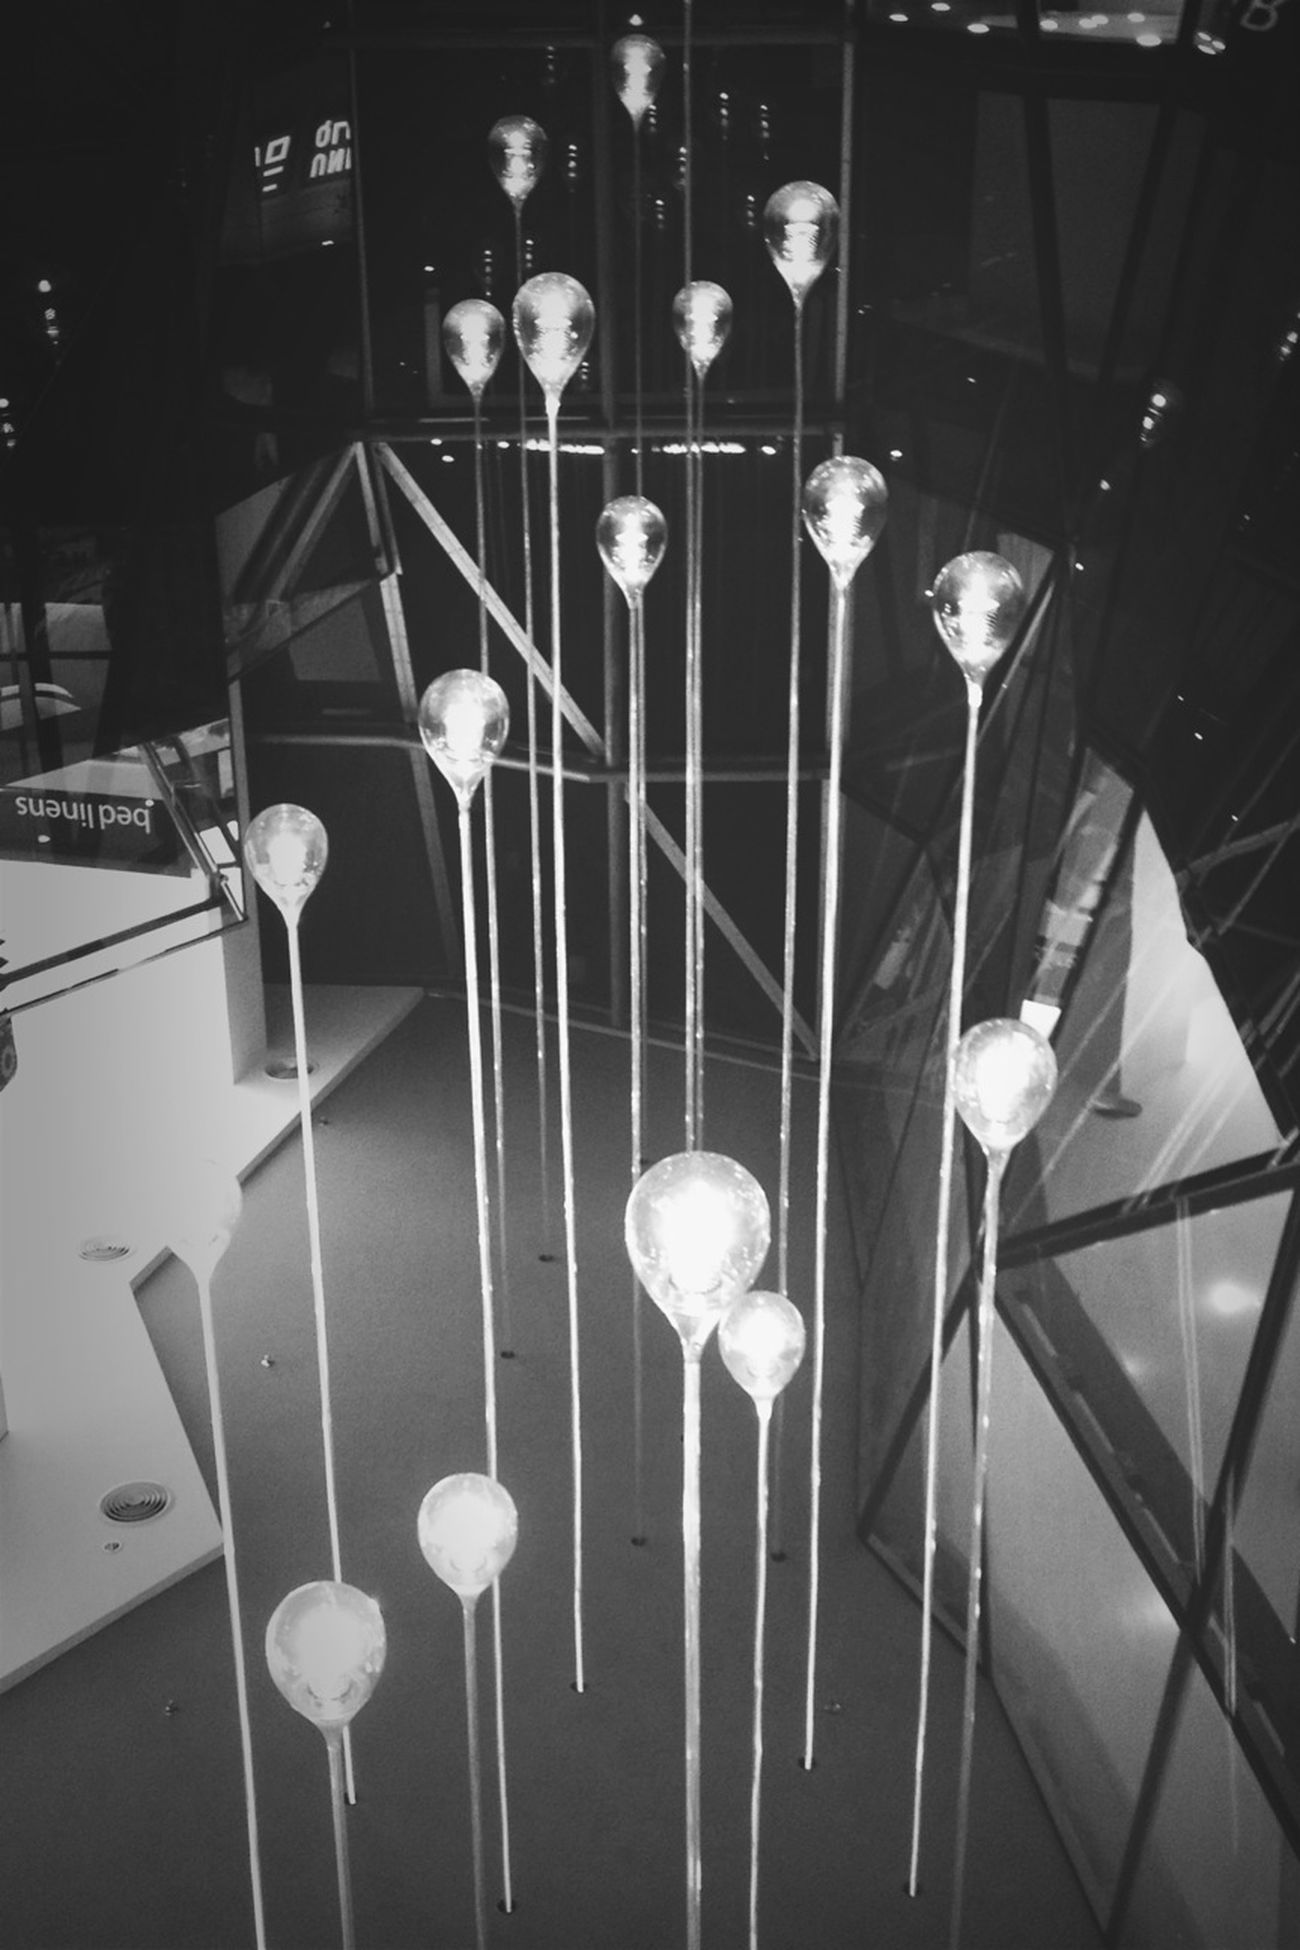 Lights Blackandwhite AMPt_community Glass Balloons